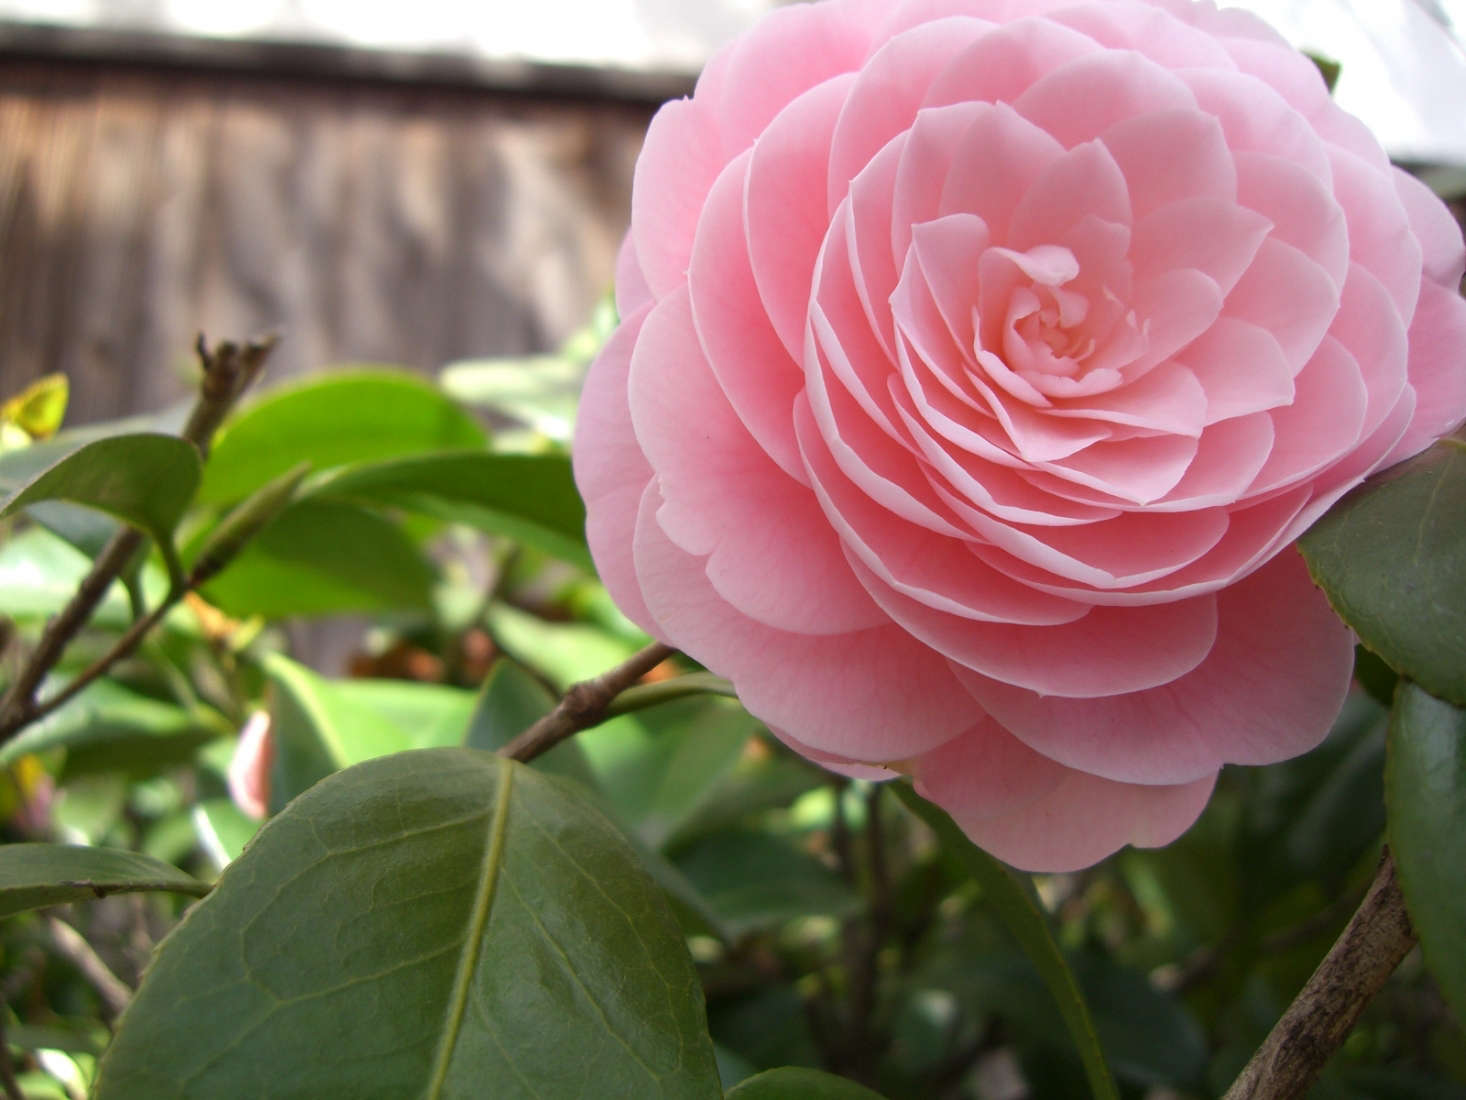 A Camellia japonica. Photograph by Akaitori via Flickr.